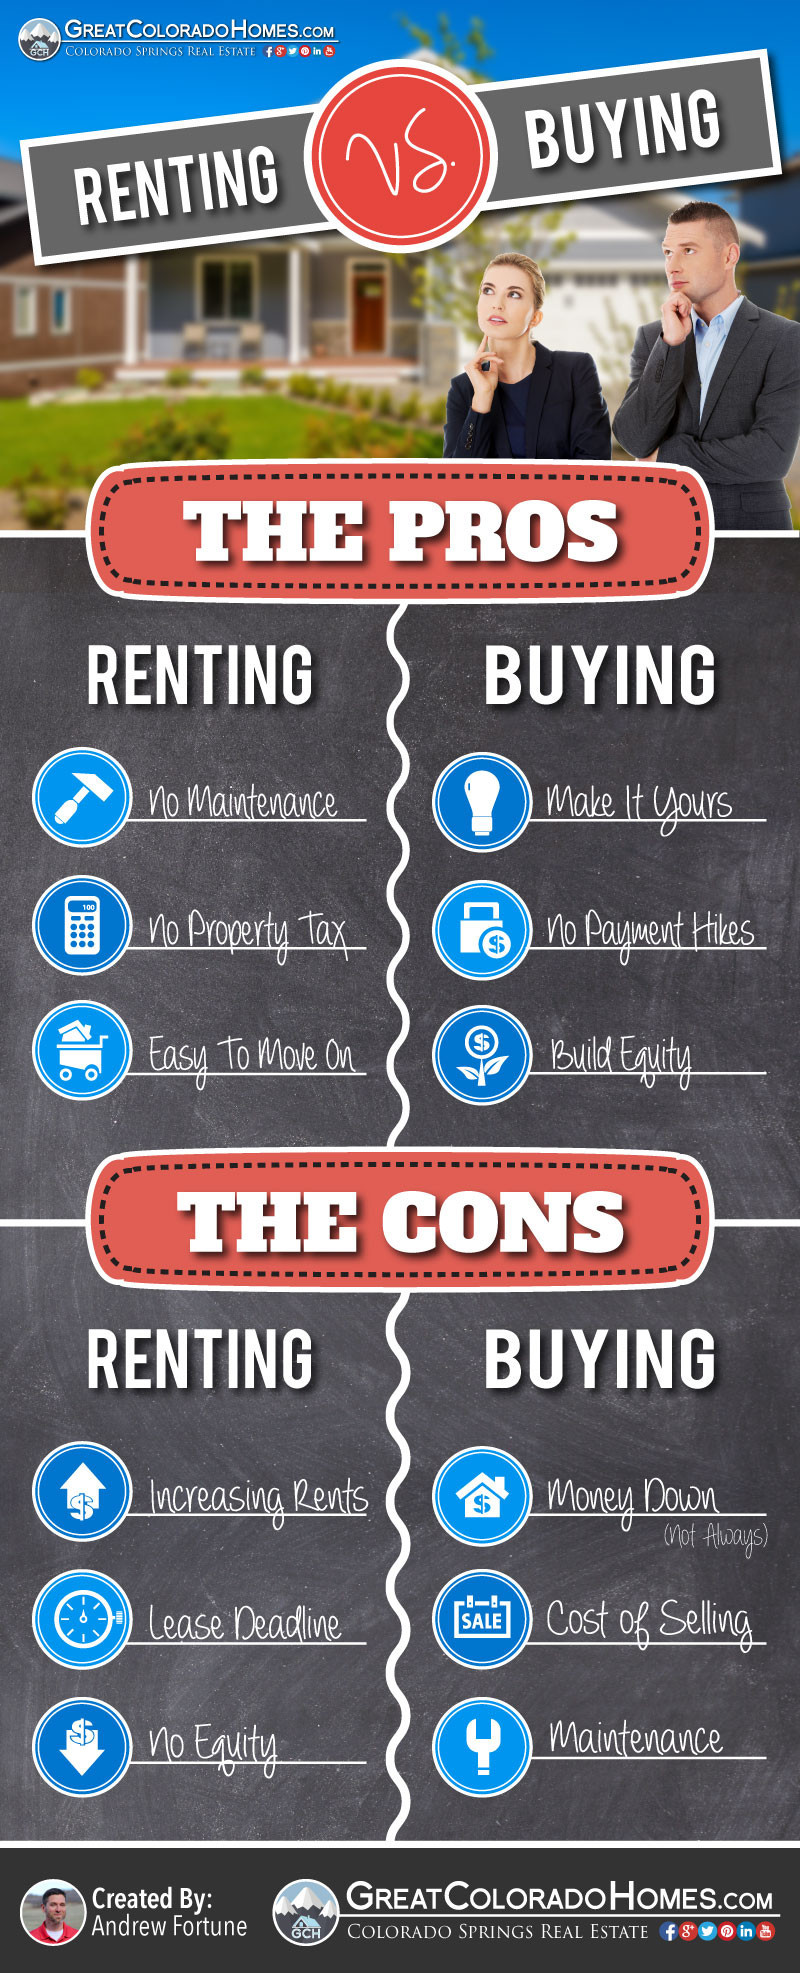 The Pros & Cons of Renting Versus Buying a Home